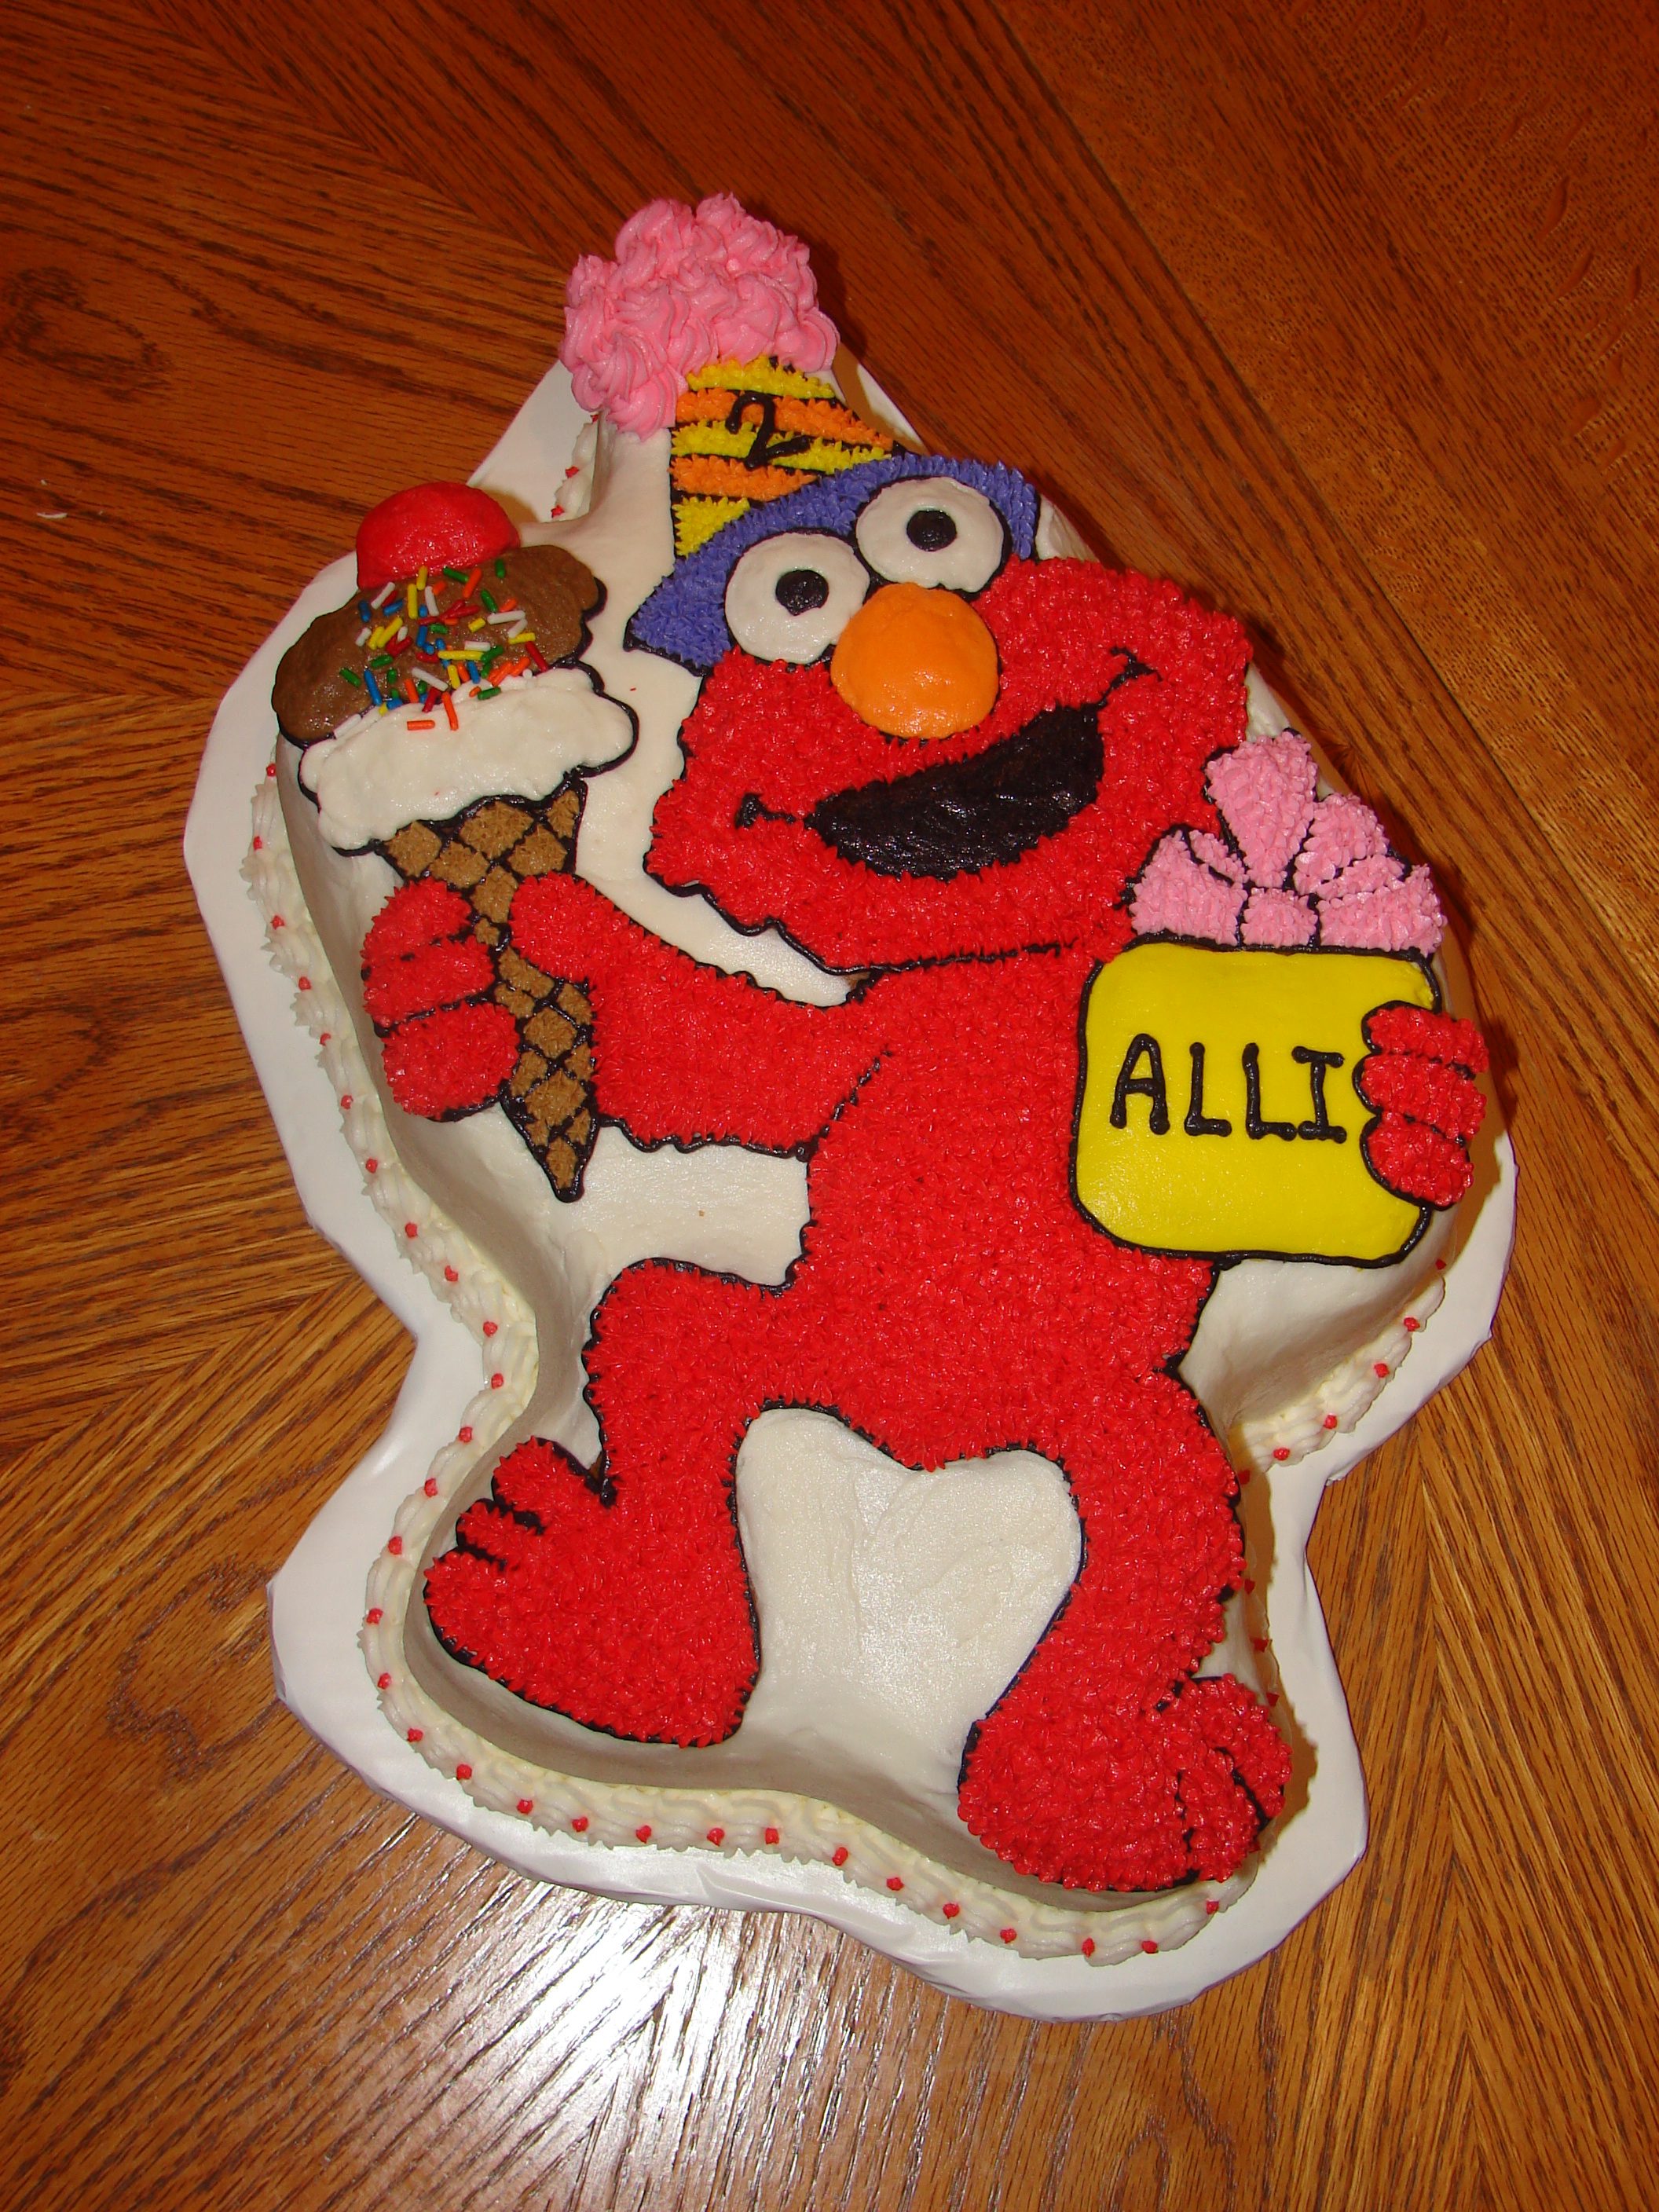 Elmo Cake For A 2nd Birthday This Was Made With The Pan As 2 Layer So It Would Serve 25